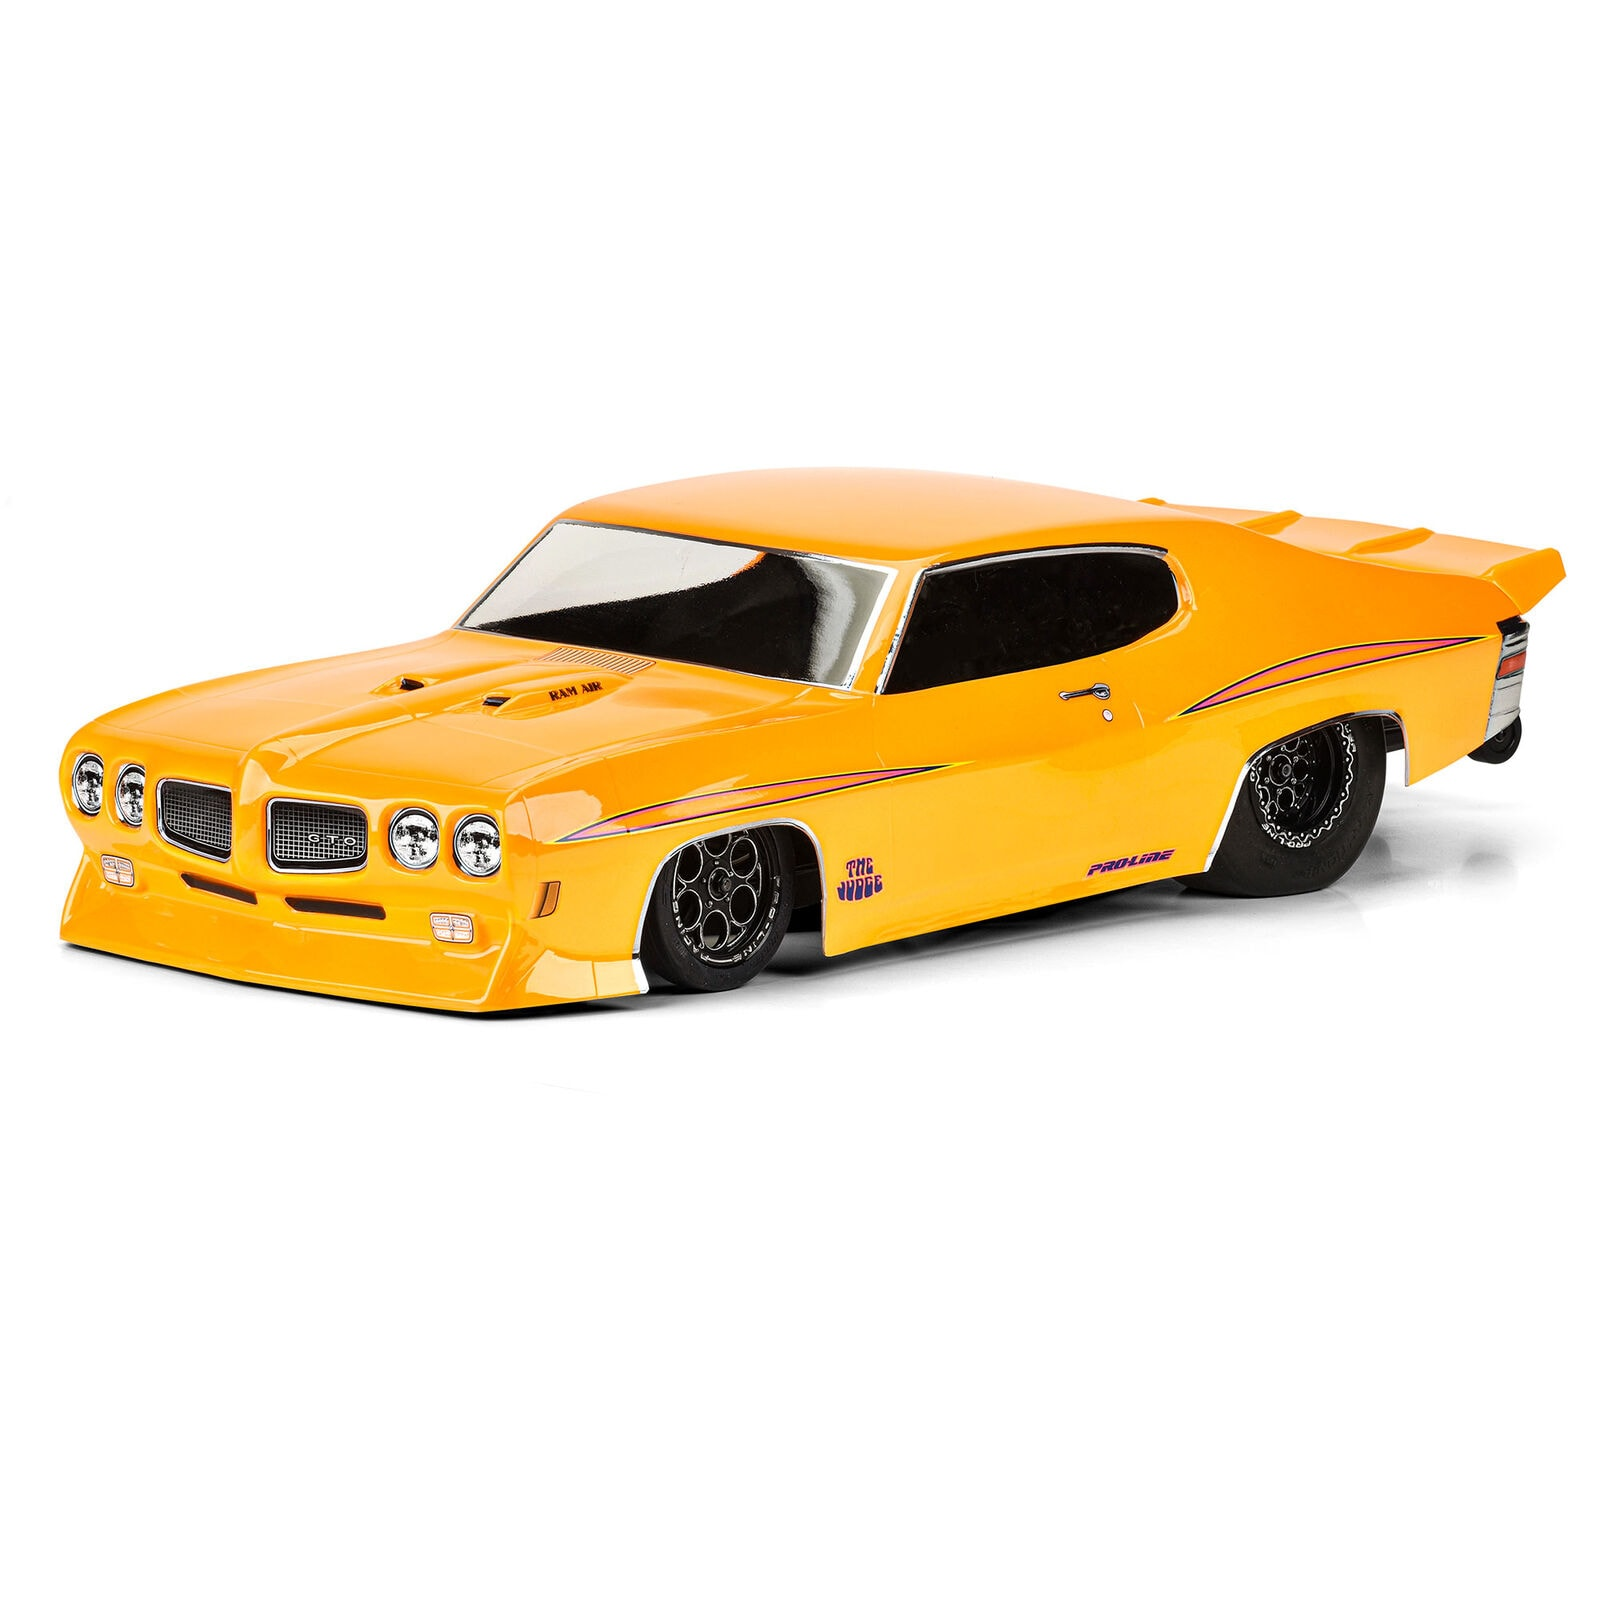 Turn Your R/C Dragster into a Goat with Pro-Line's 1970 Pontiac GTO Judge Body